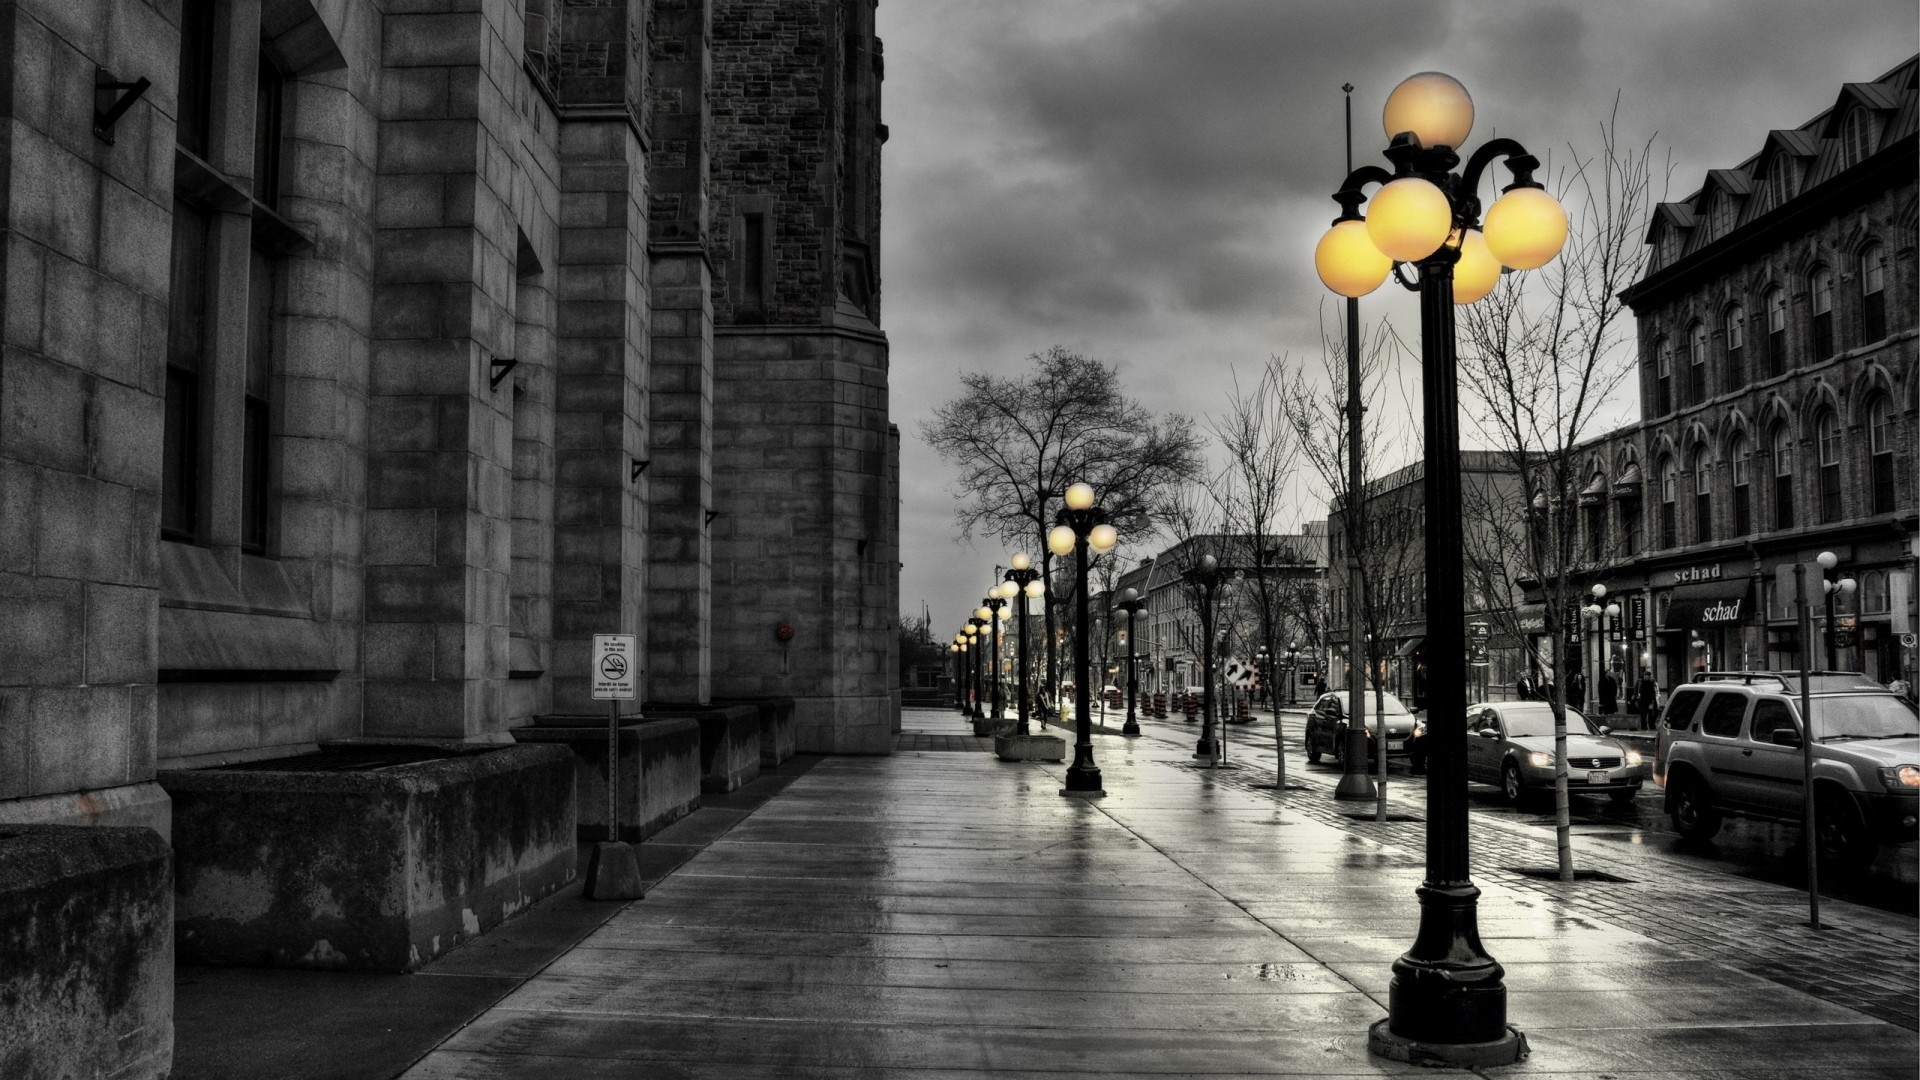 Wallpaper street, city, evening, black white, lights, buildings,  hdr